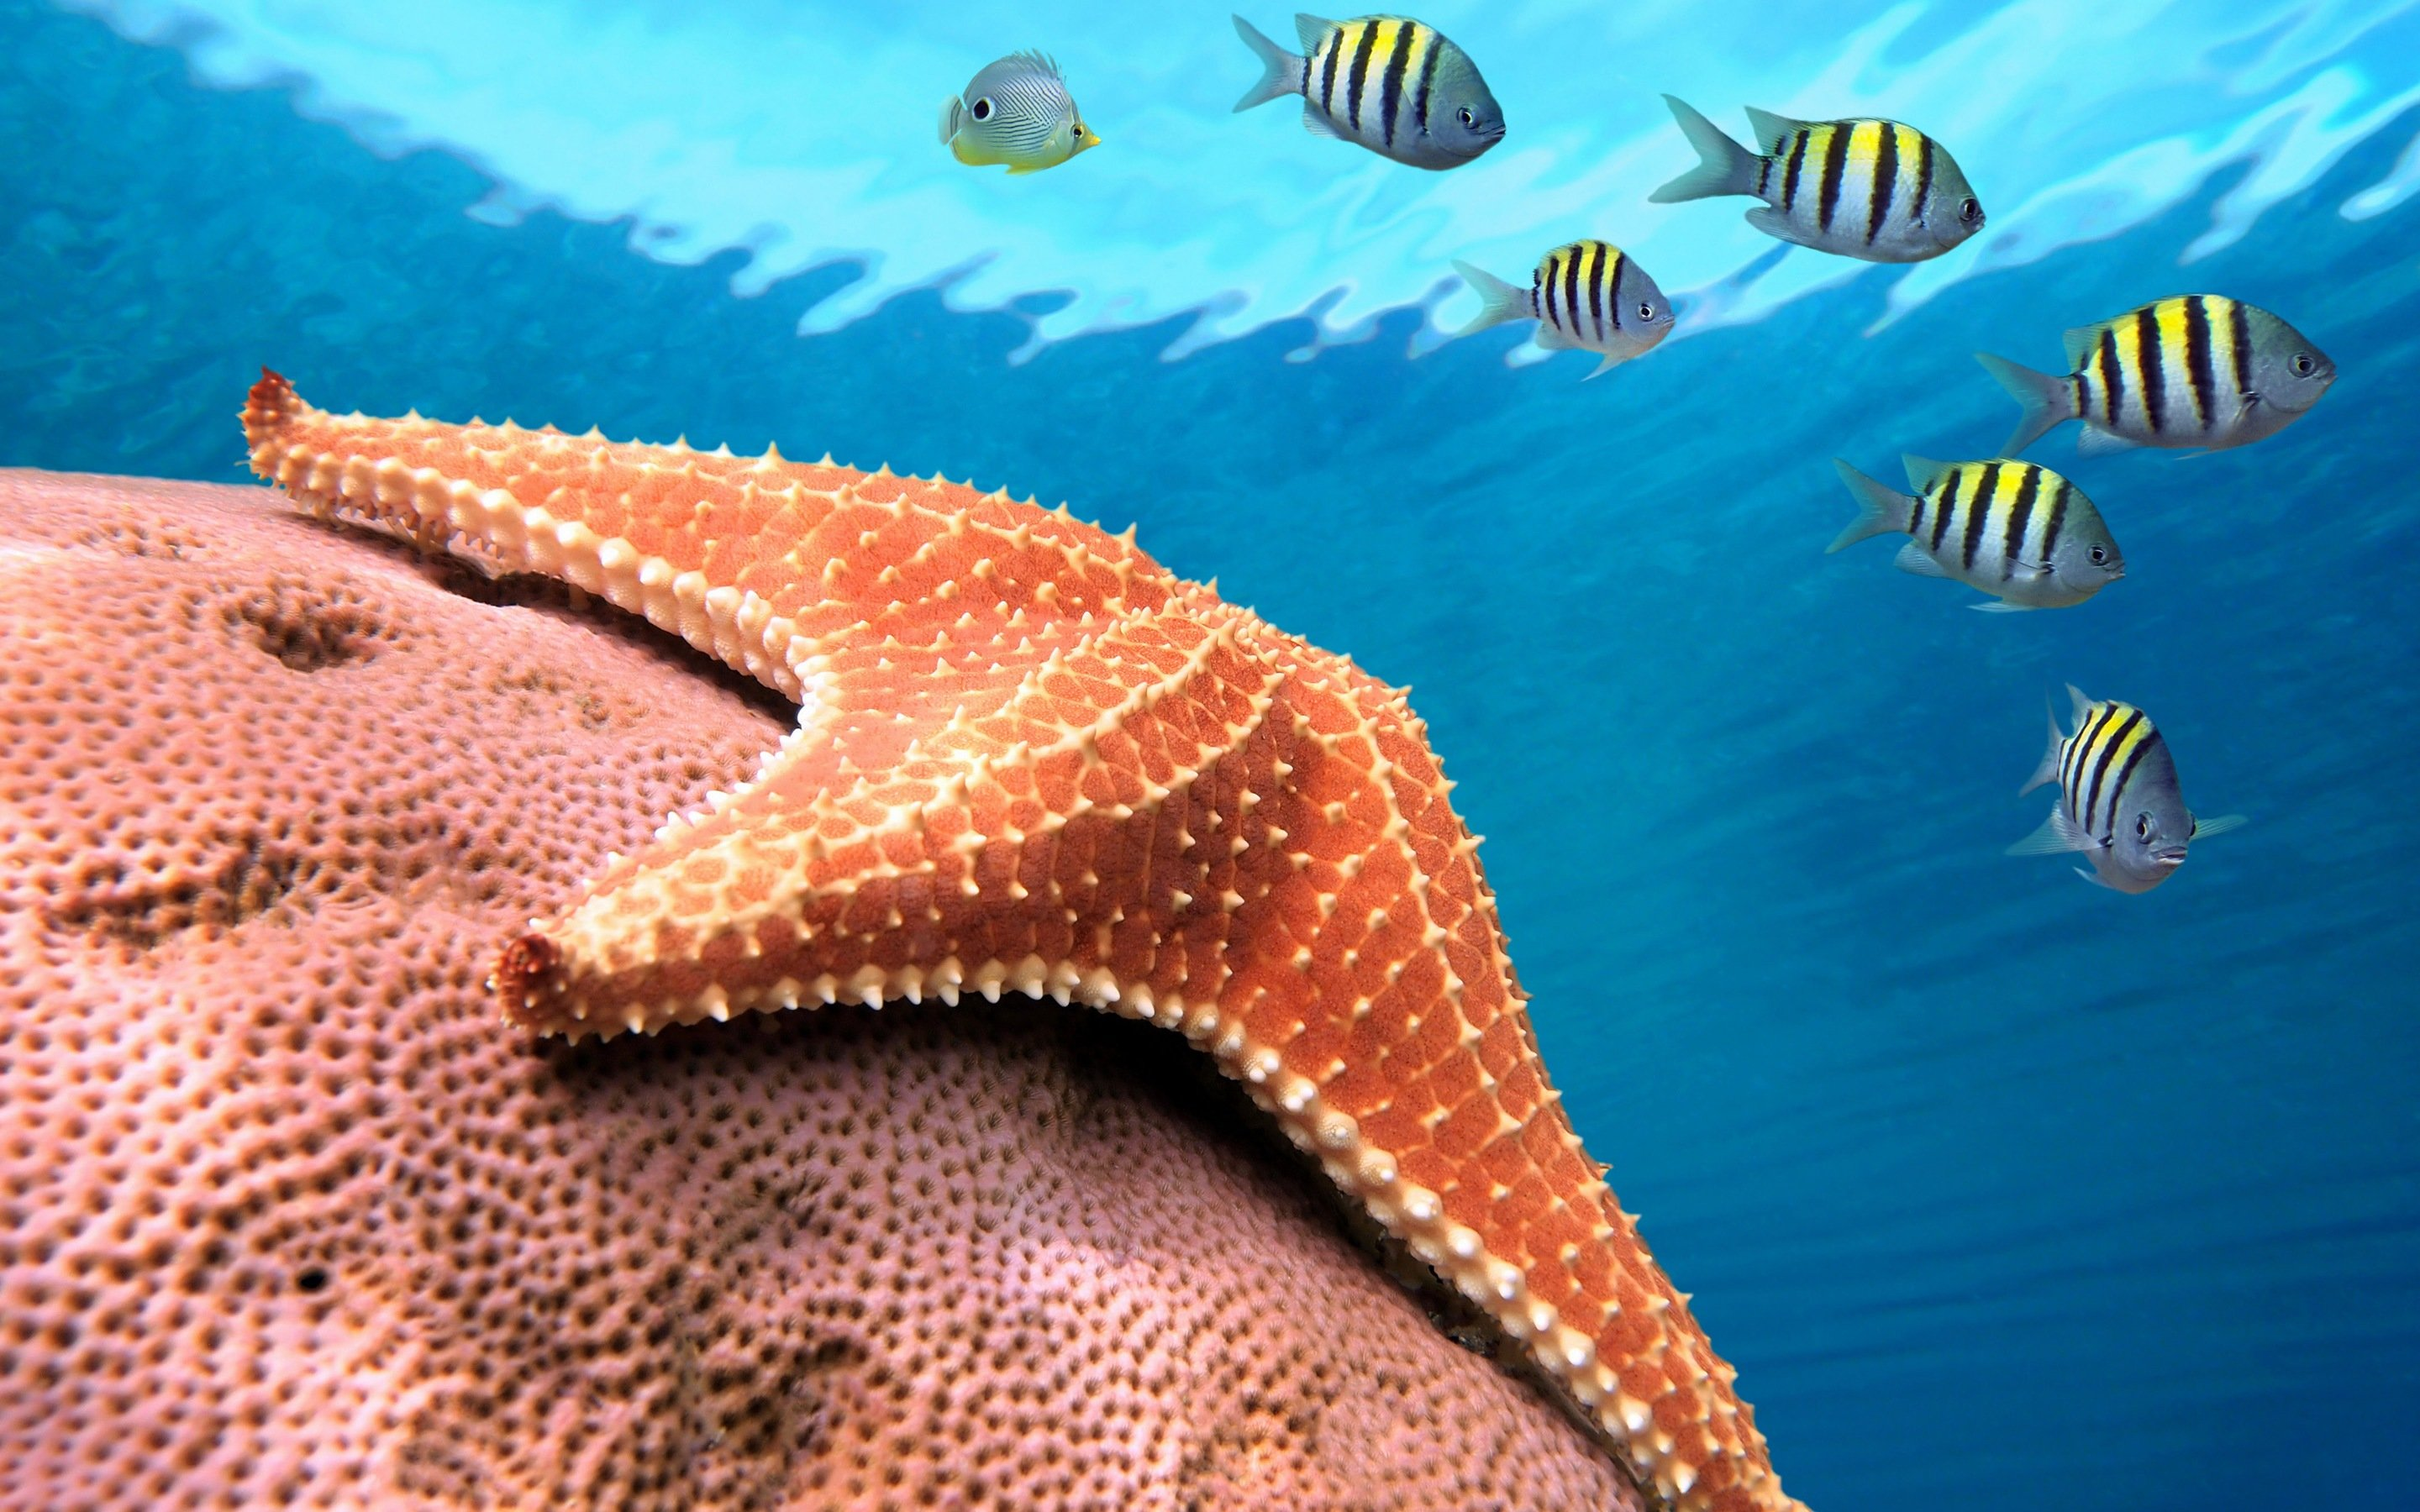 Download hd 2880x1800 Starfish computer background ID:29664 for free